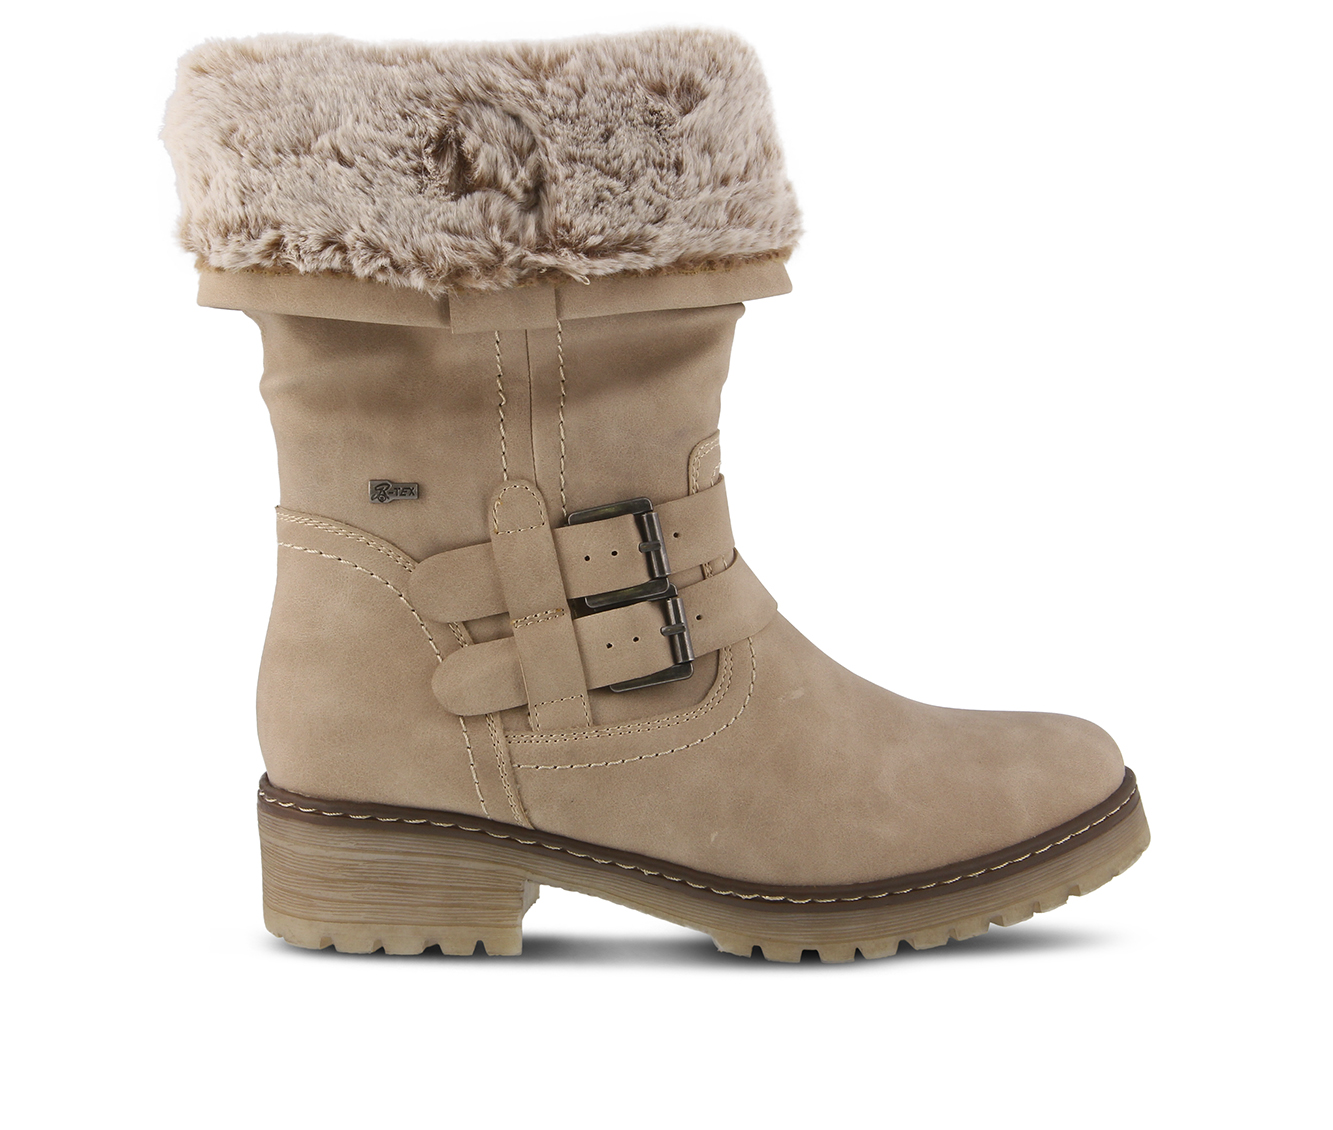 SPRING STEP Comatulla Women's Boots (Beige Faux Leather)